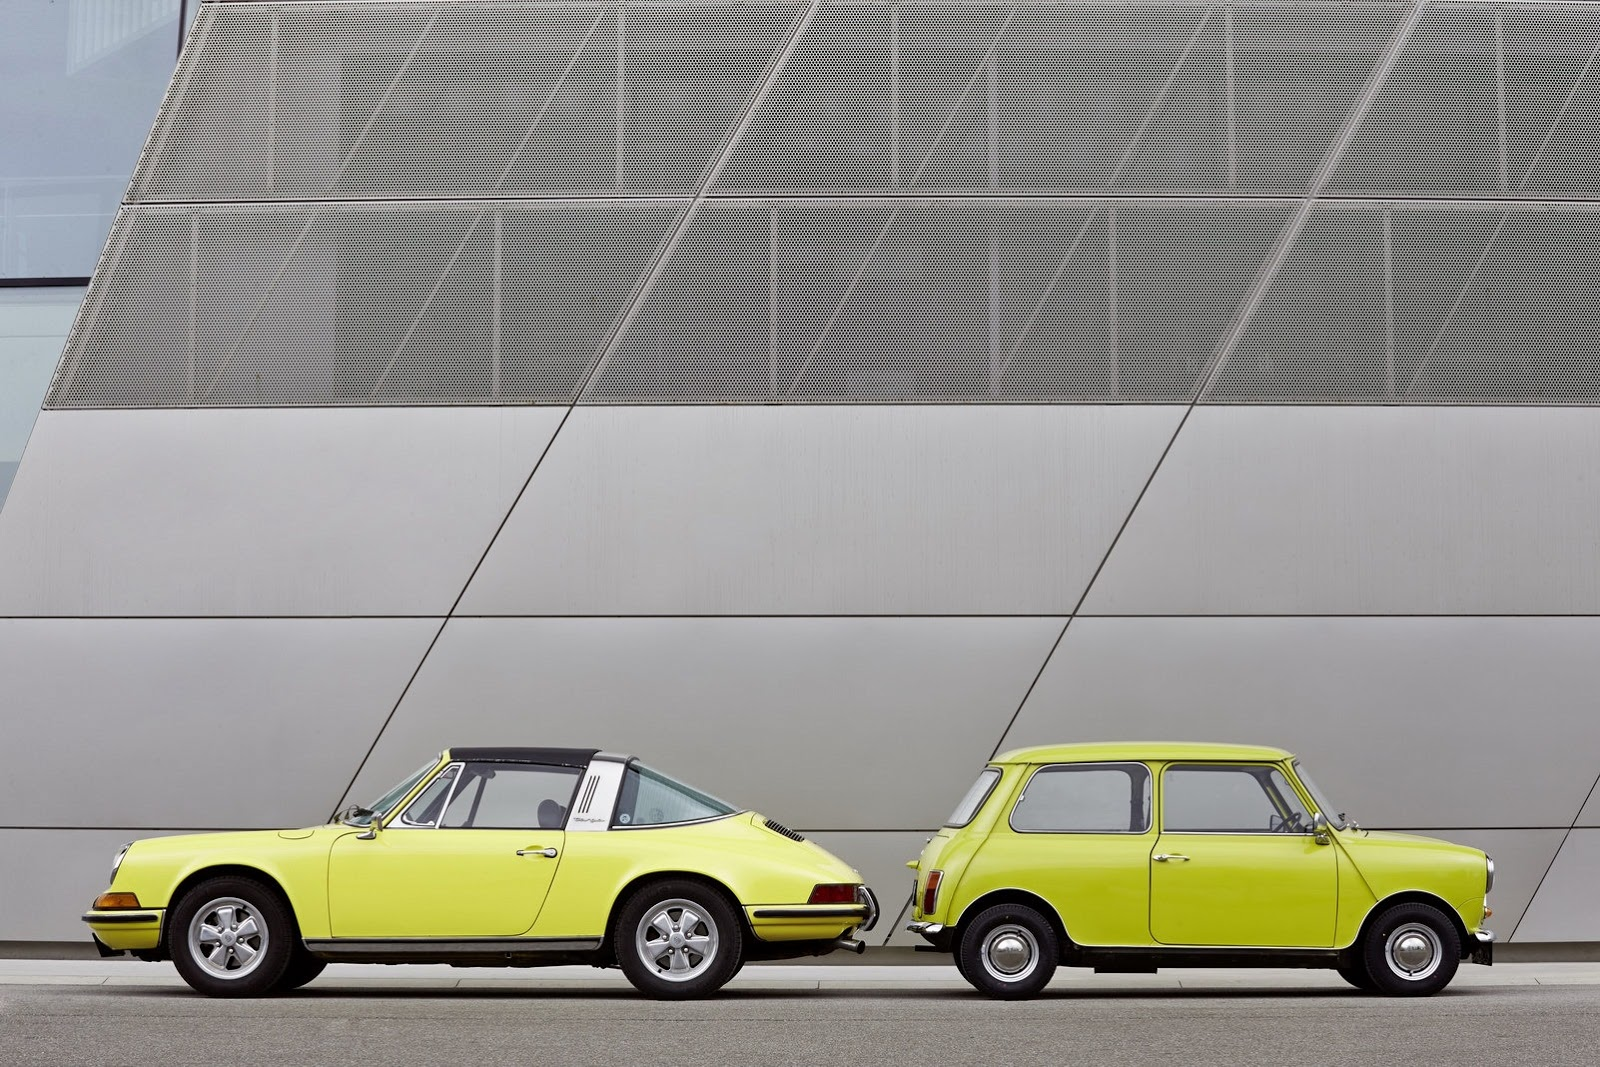 Awesome MINI Sends Birthday Wishes To Porscheu0027s 911 Sports Car With Awesome Photo  Shoot | Top Speed. »